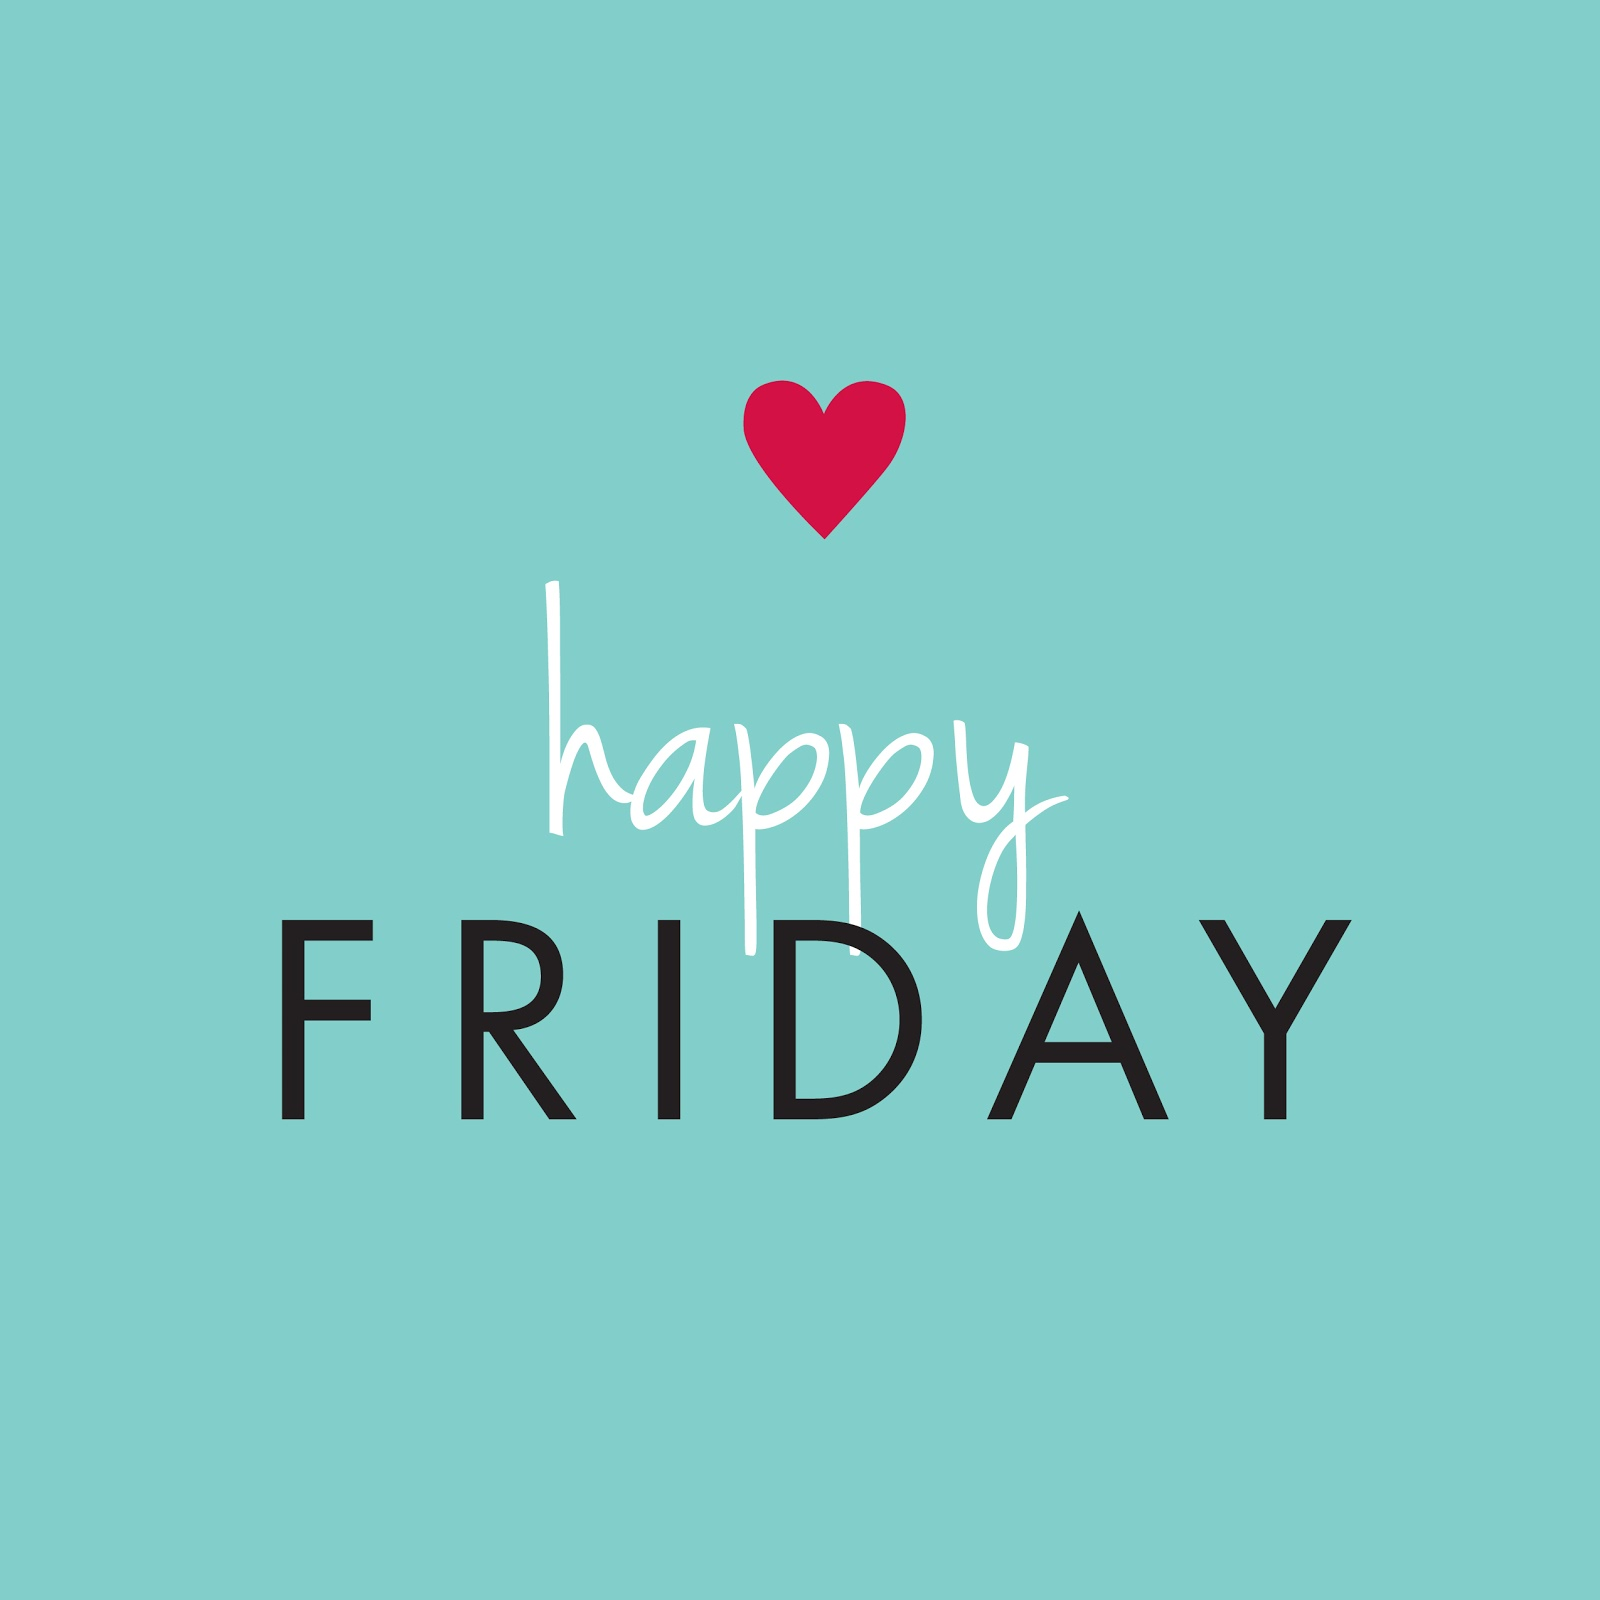 I M So Happy Its Friday: Everything To Be: Smile... It's Friday